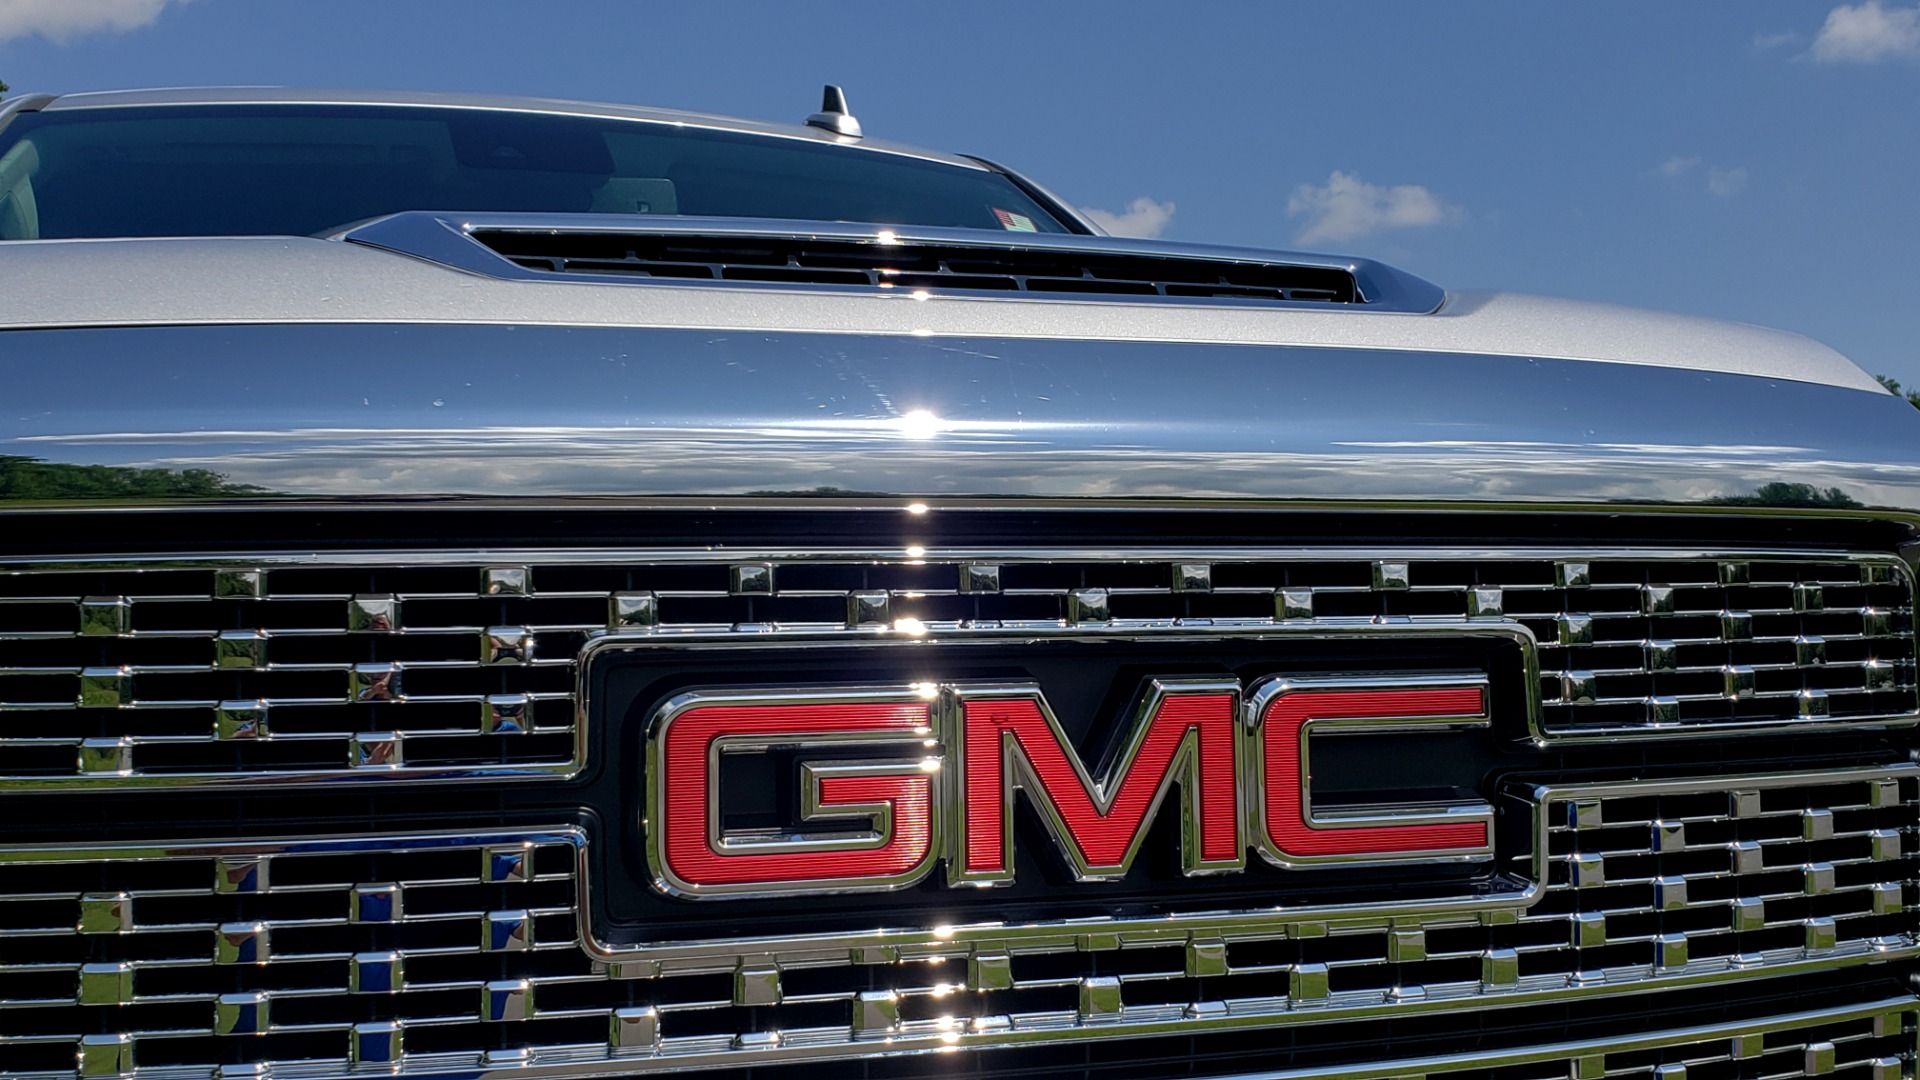 Used 2018 GMC SIERRA 2500HD DENALI 4WD / 6.6L DURAMAX / NAV / SUNROOF / BOSE / REARVIEW for sale Sold at Formula Imports in Charlotte NC 28227 16